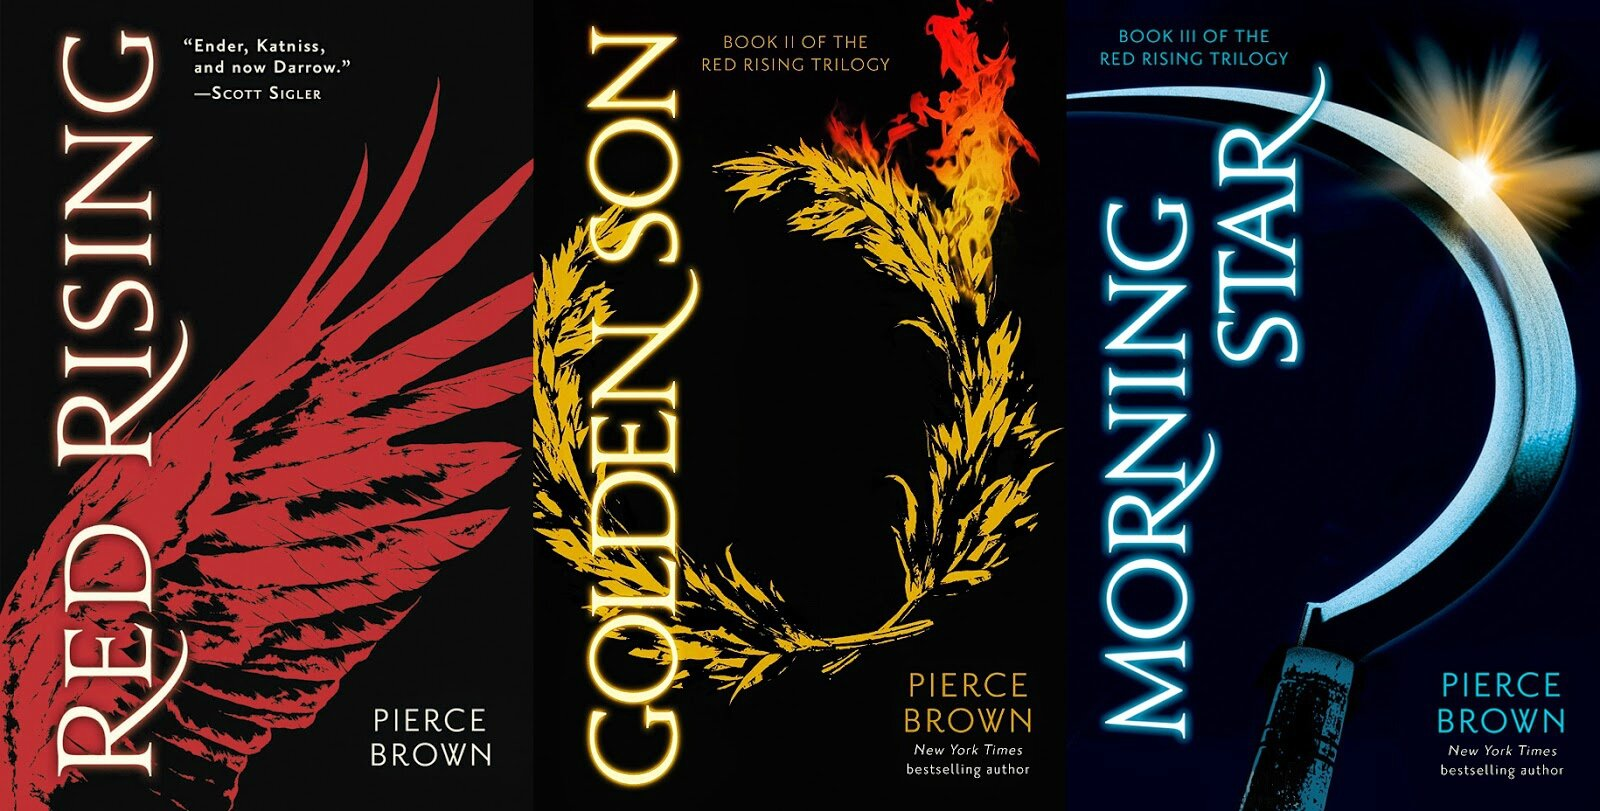 Pierce Brown - Trilogie Red Rising (T1: Red Rising, T2: Golden Son ...